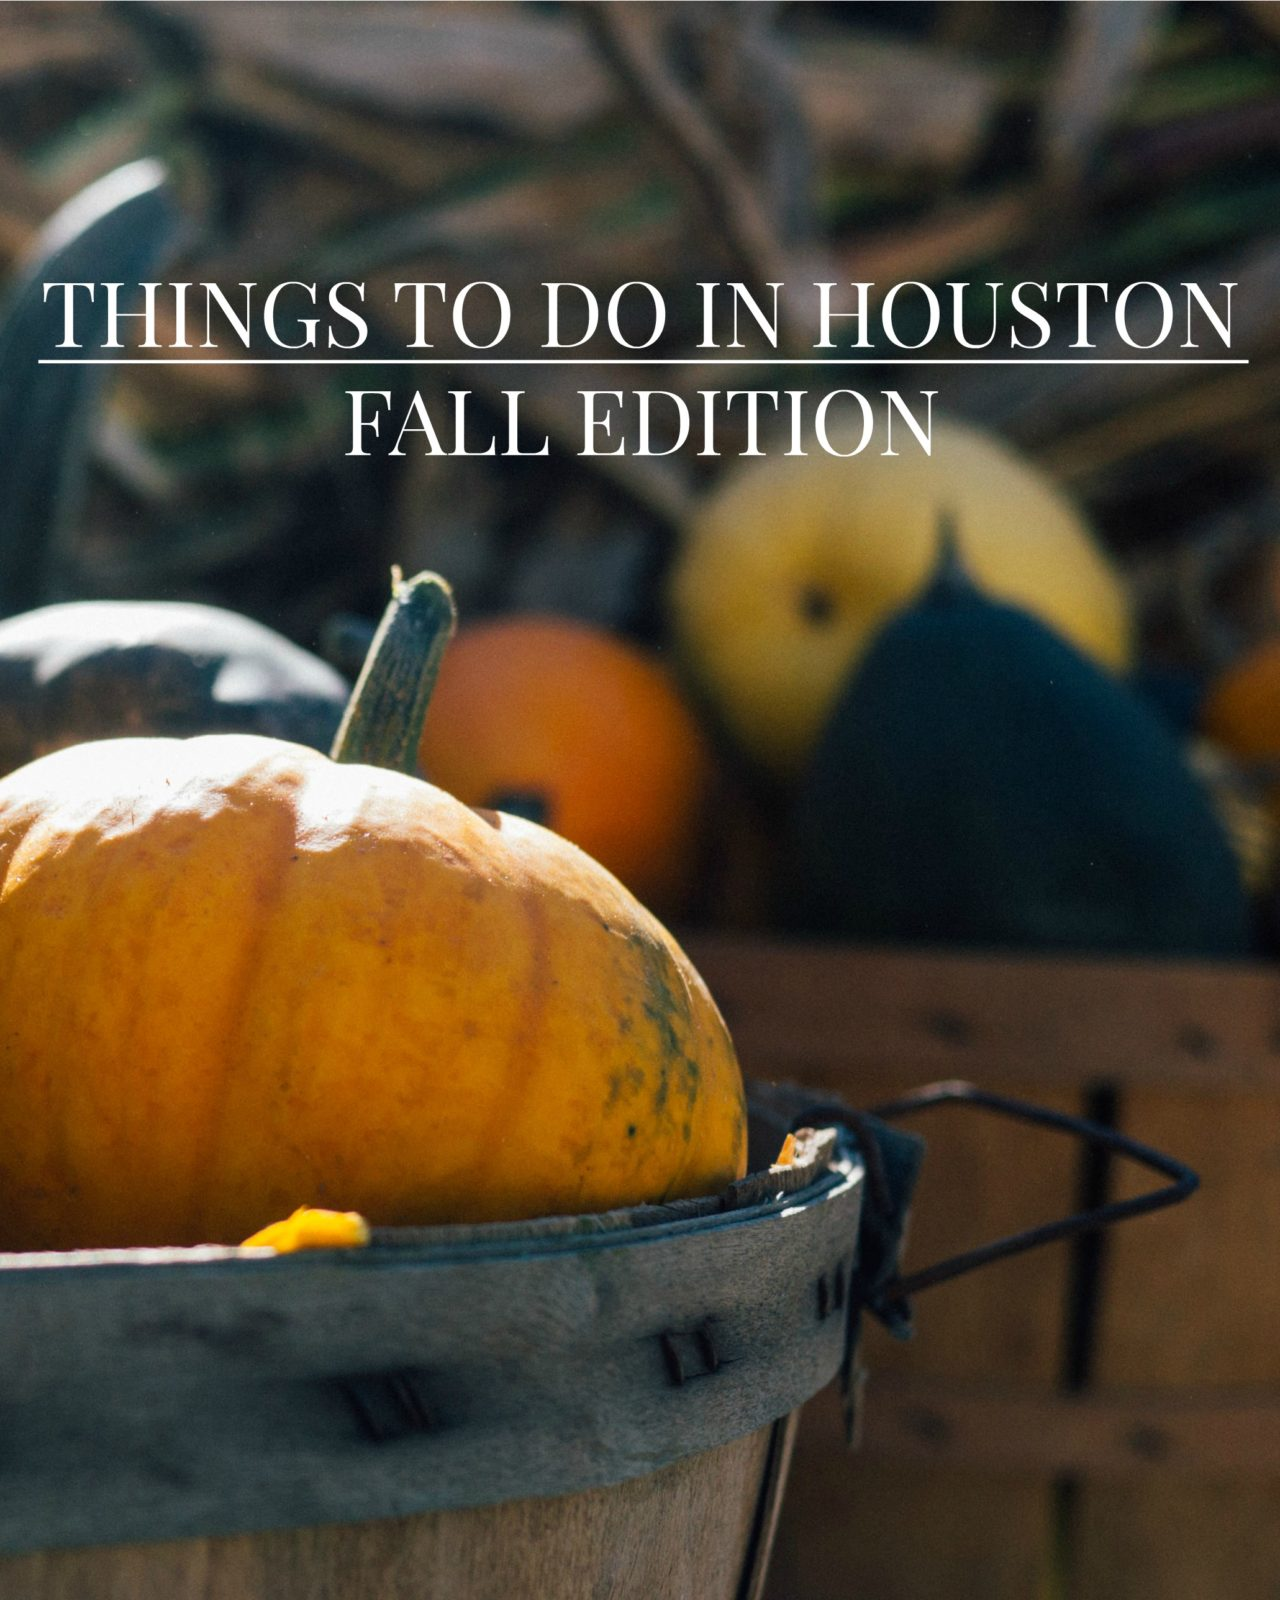 A list of things to do in Houston this 2016 fall season. Perfect to find Houston events if you plan to travel to Houston, Texas during the fall. Includes Houston breweries, markets, fun runs, fall festivals, and more. // www.ElleTalk.com